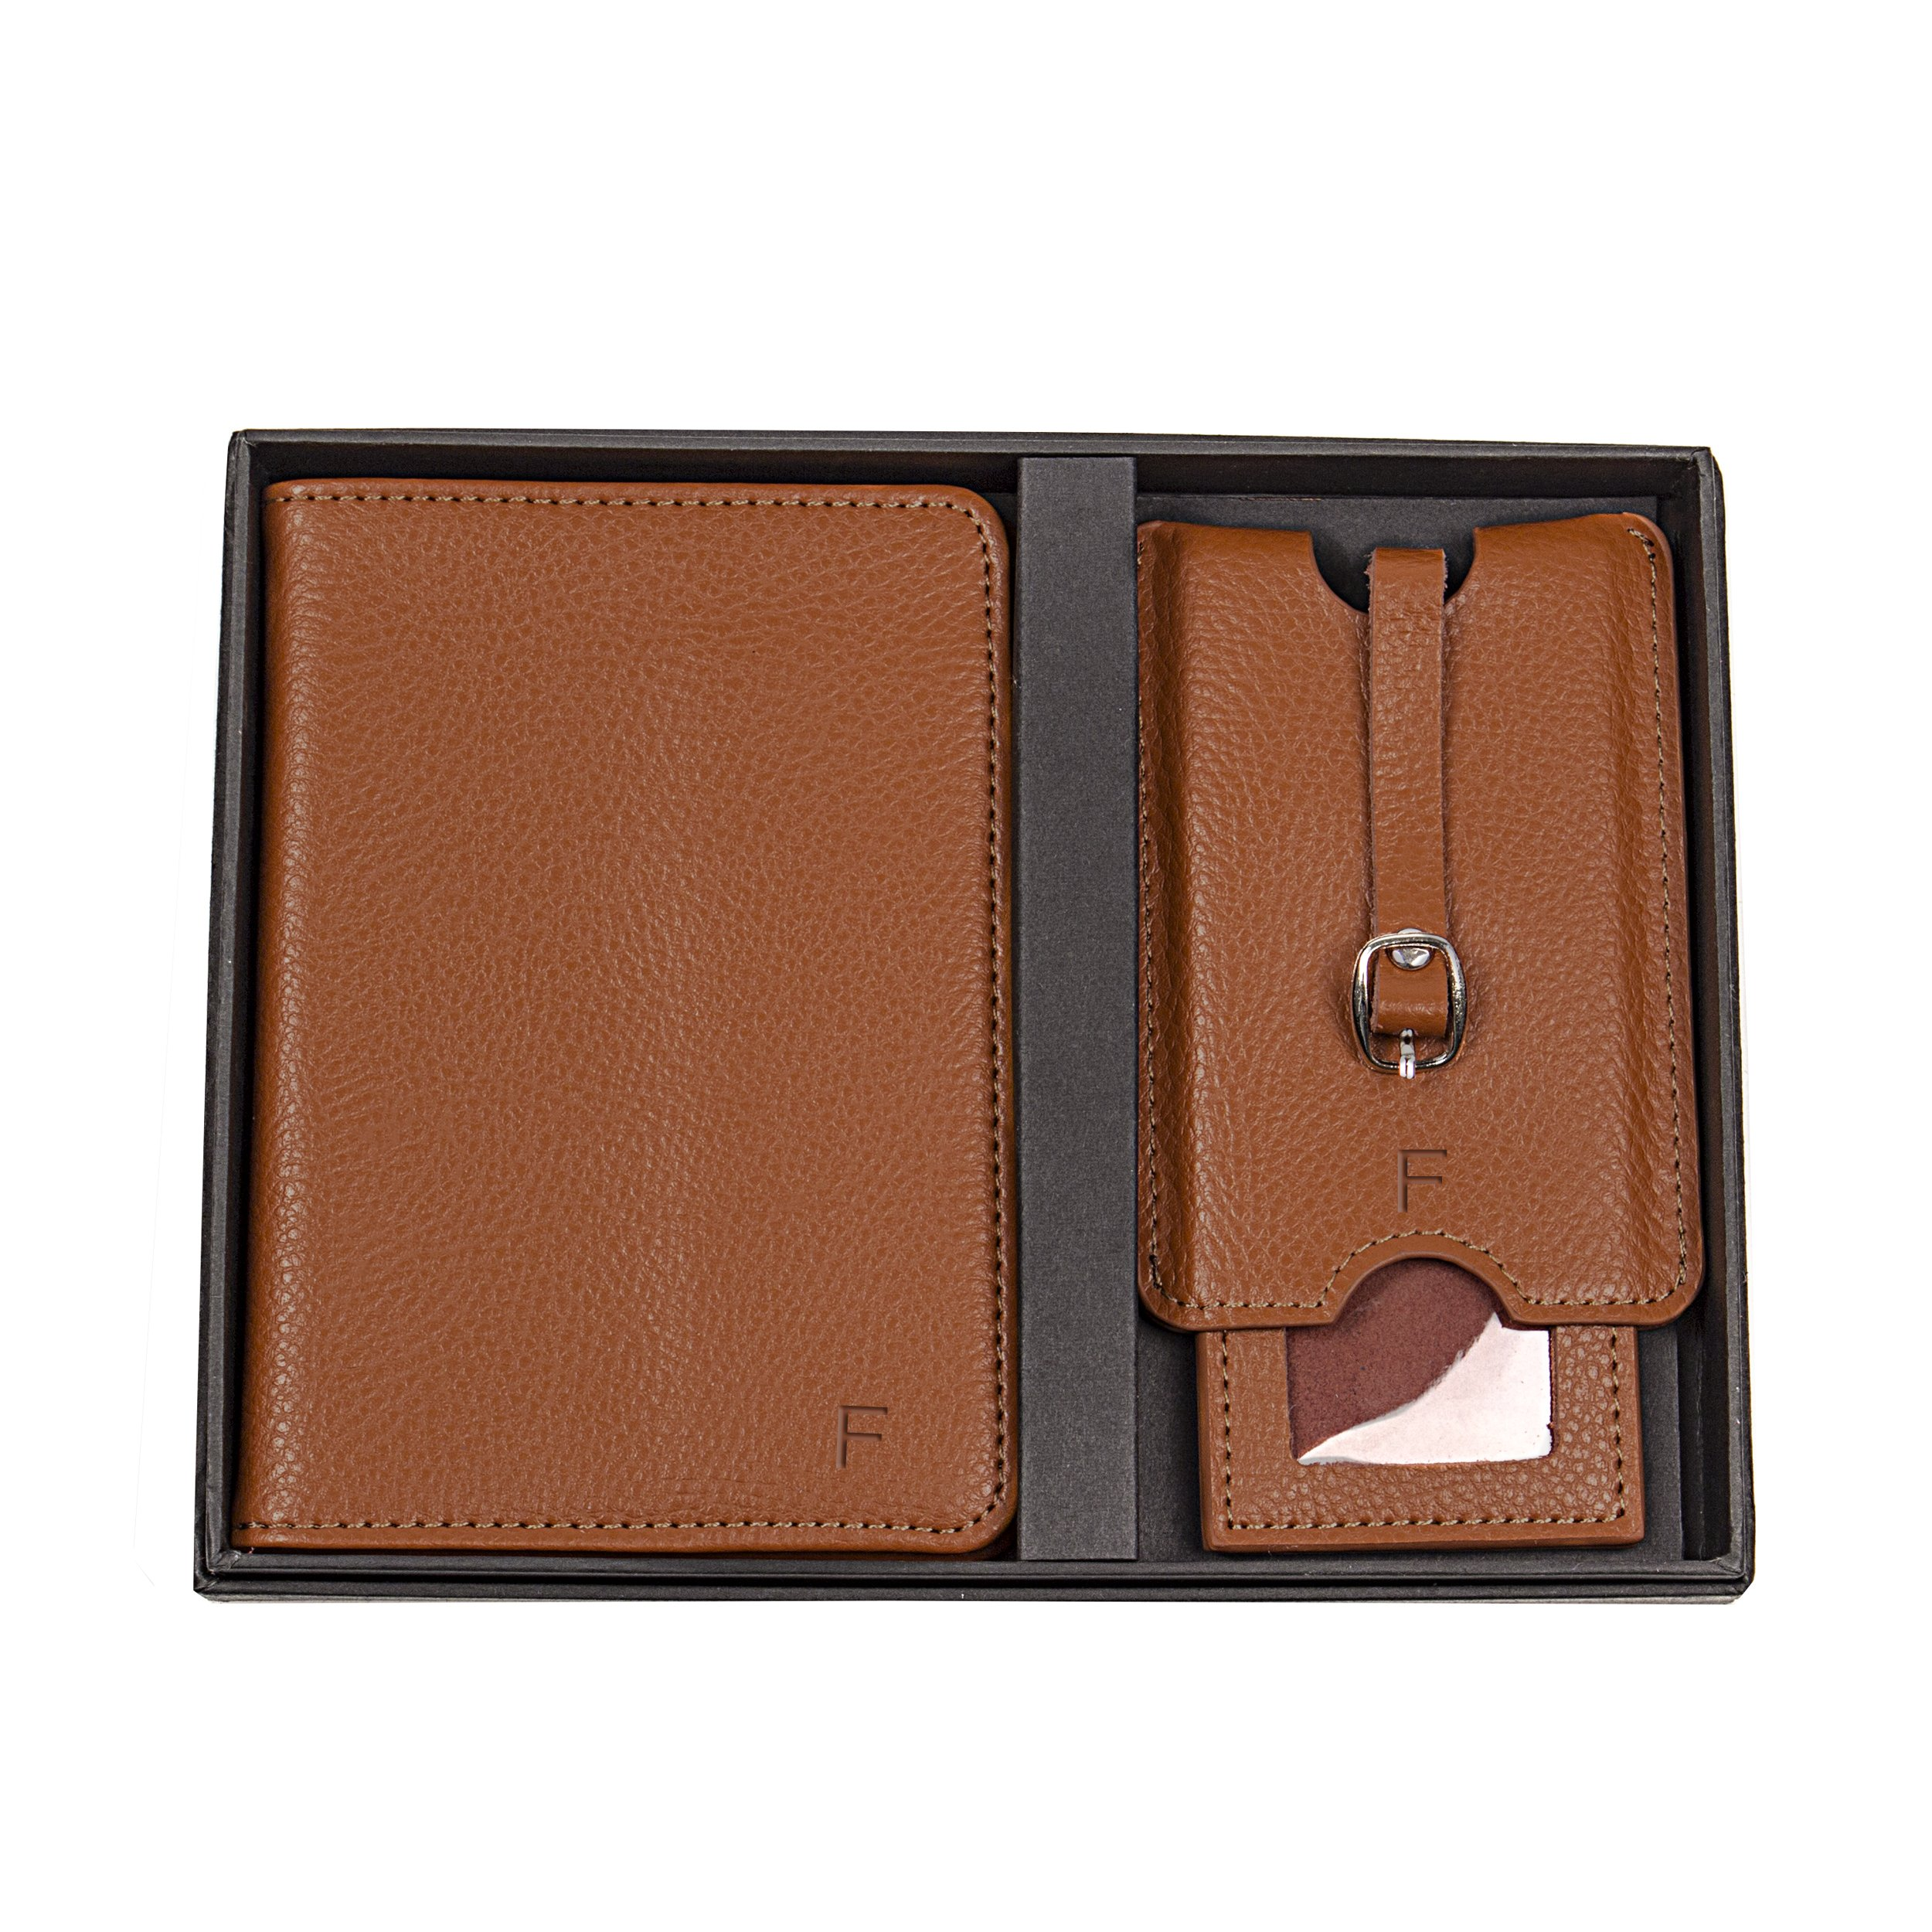 Cathy's Concepts Personalized Leather Passport Holder & Luggage Tag Set, Brown, Letter F